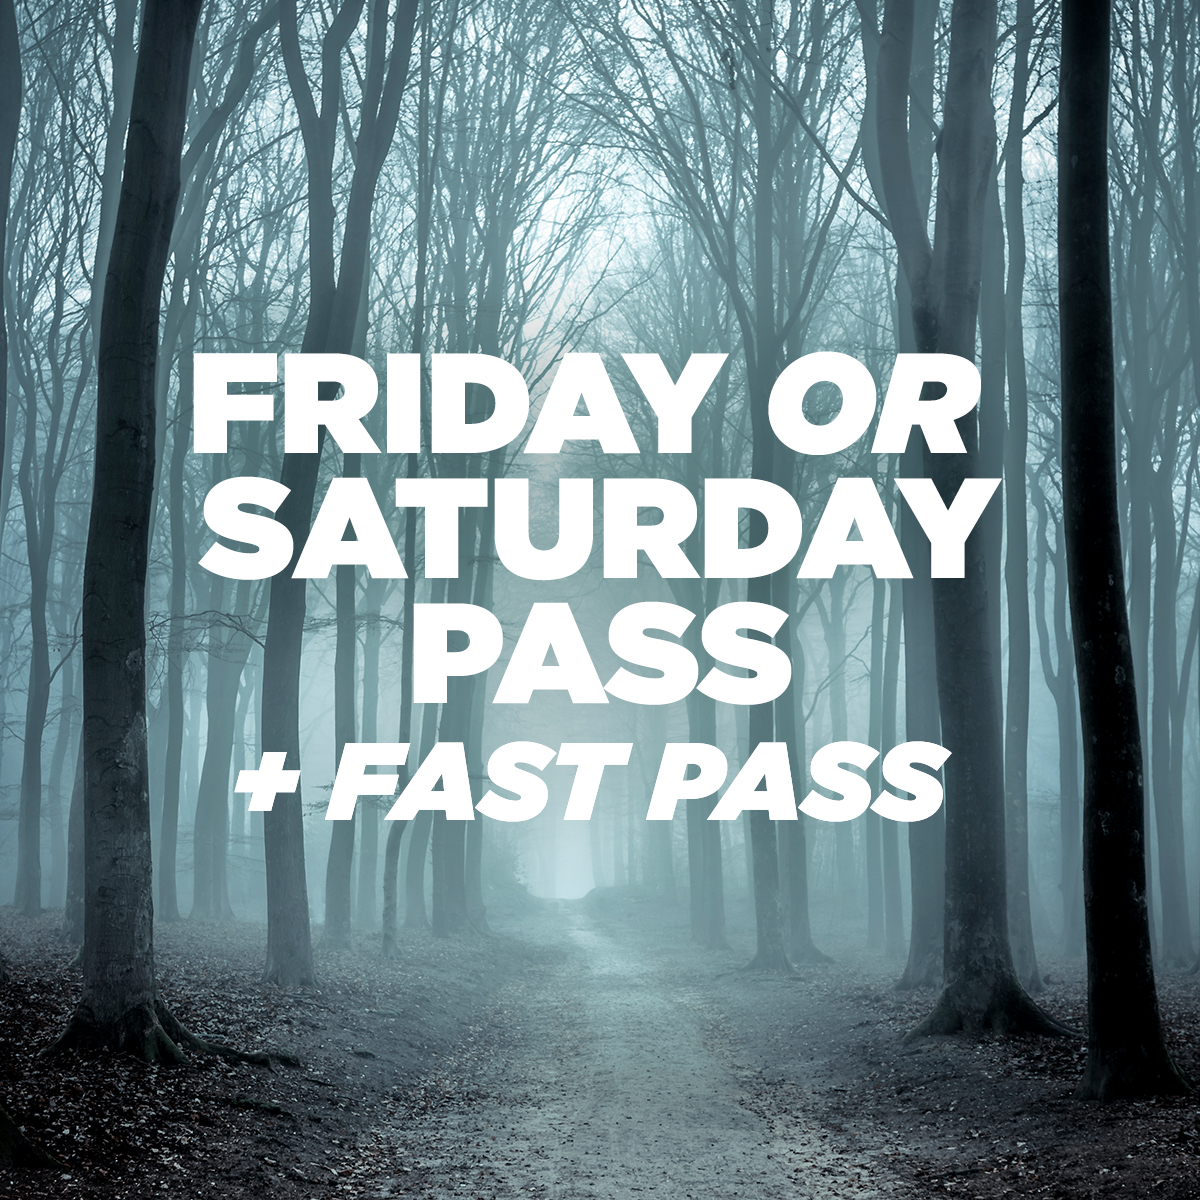 Friday or Saturday General + Fast pass